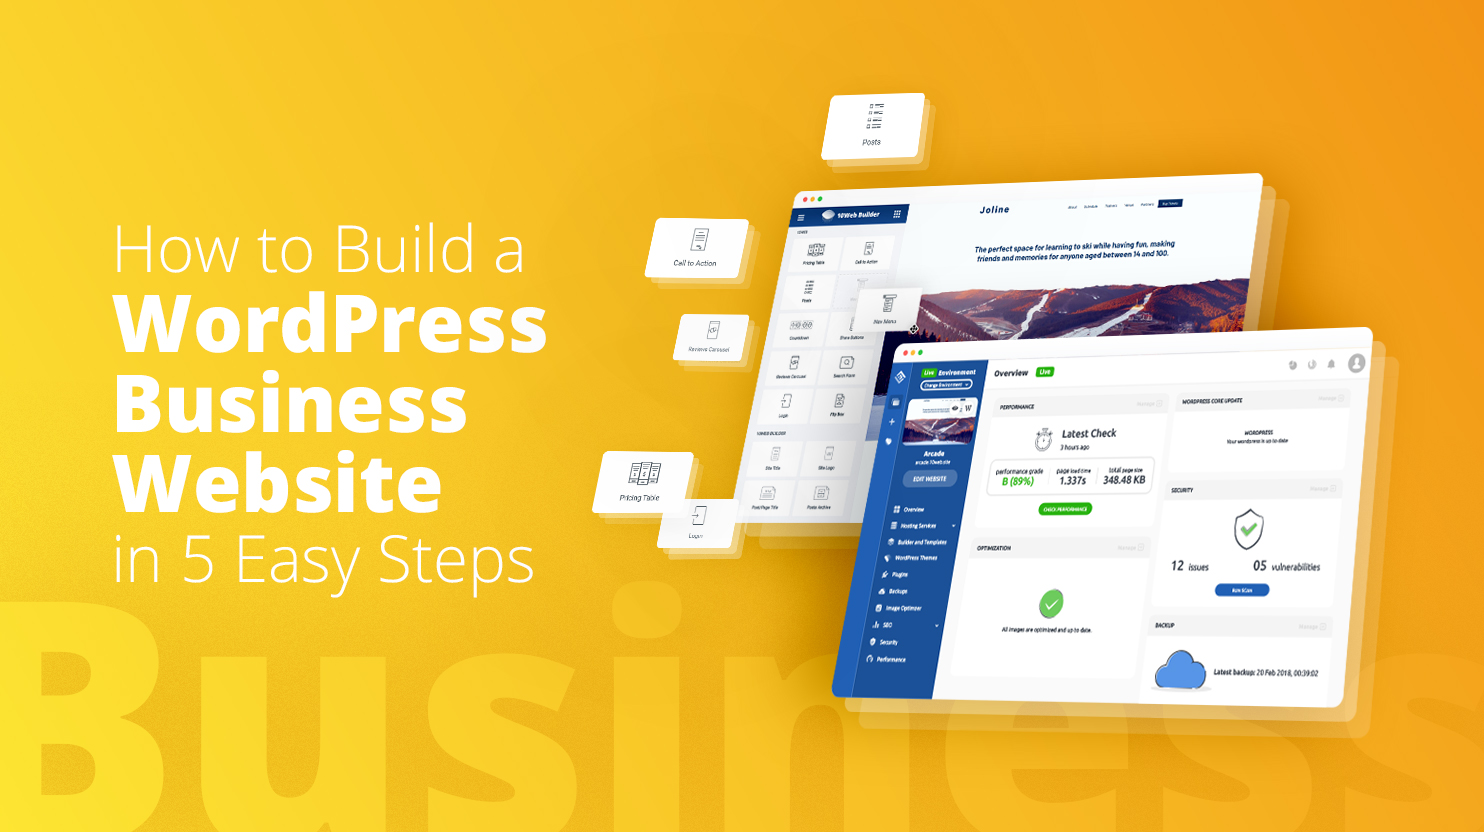 How to build a WordPress Business Website